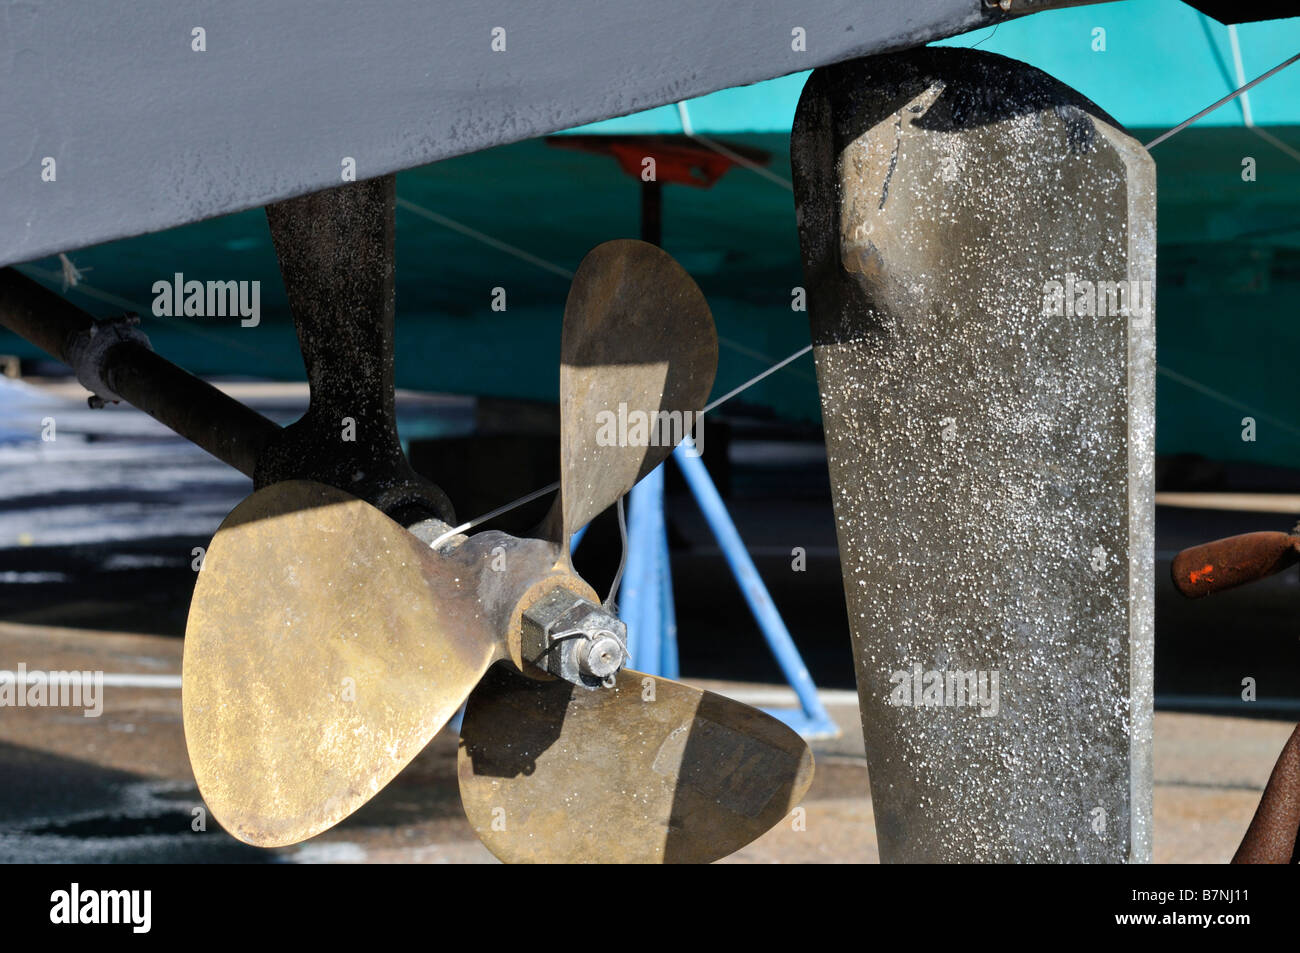 Powerboat bronze prop shaft and rudder showing pitting corrosion and barnacle growth - Stock Image